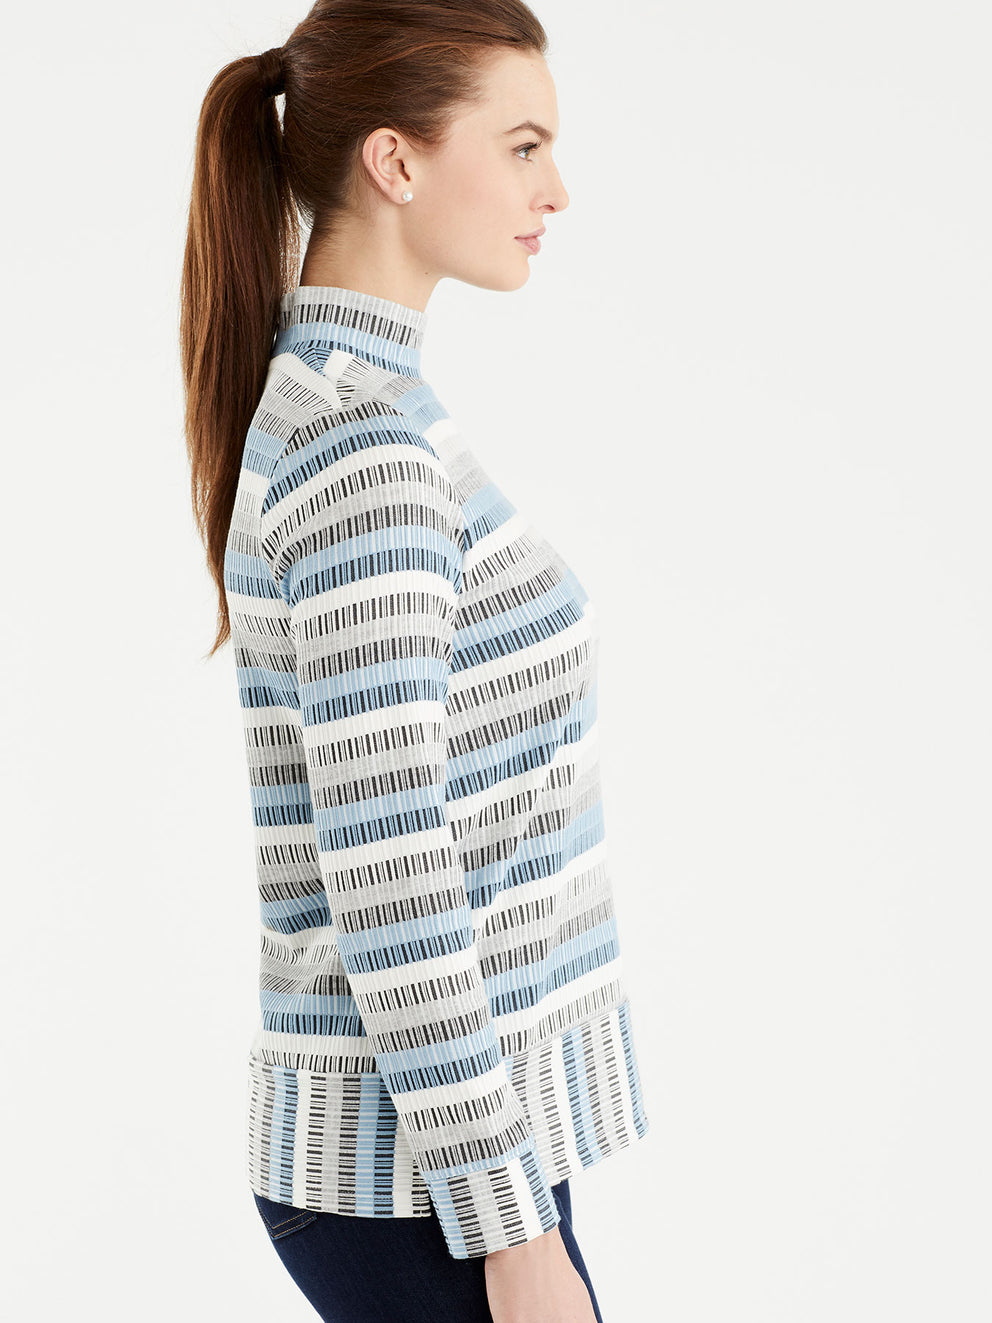 The Jones New York Long Sleeve Mock Neck Top in color Striped Blue - Image Position 2